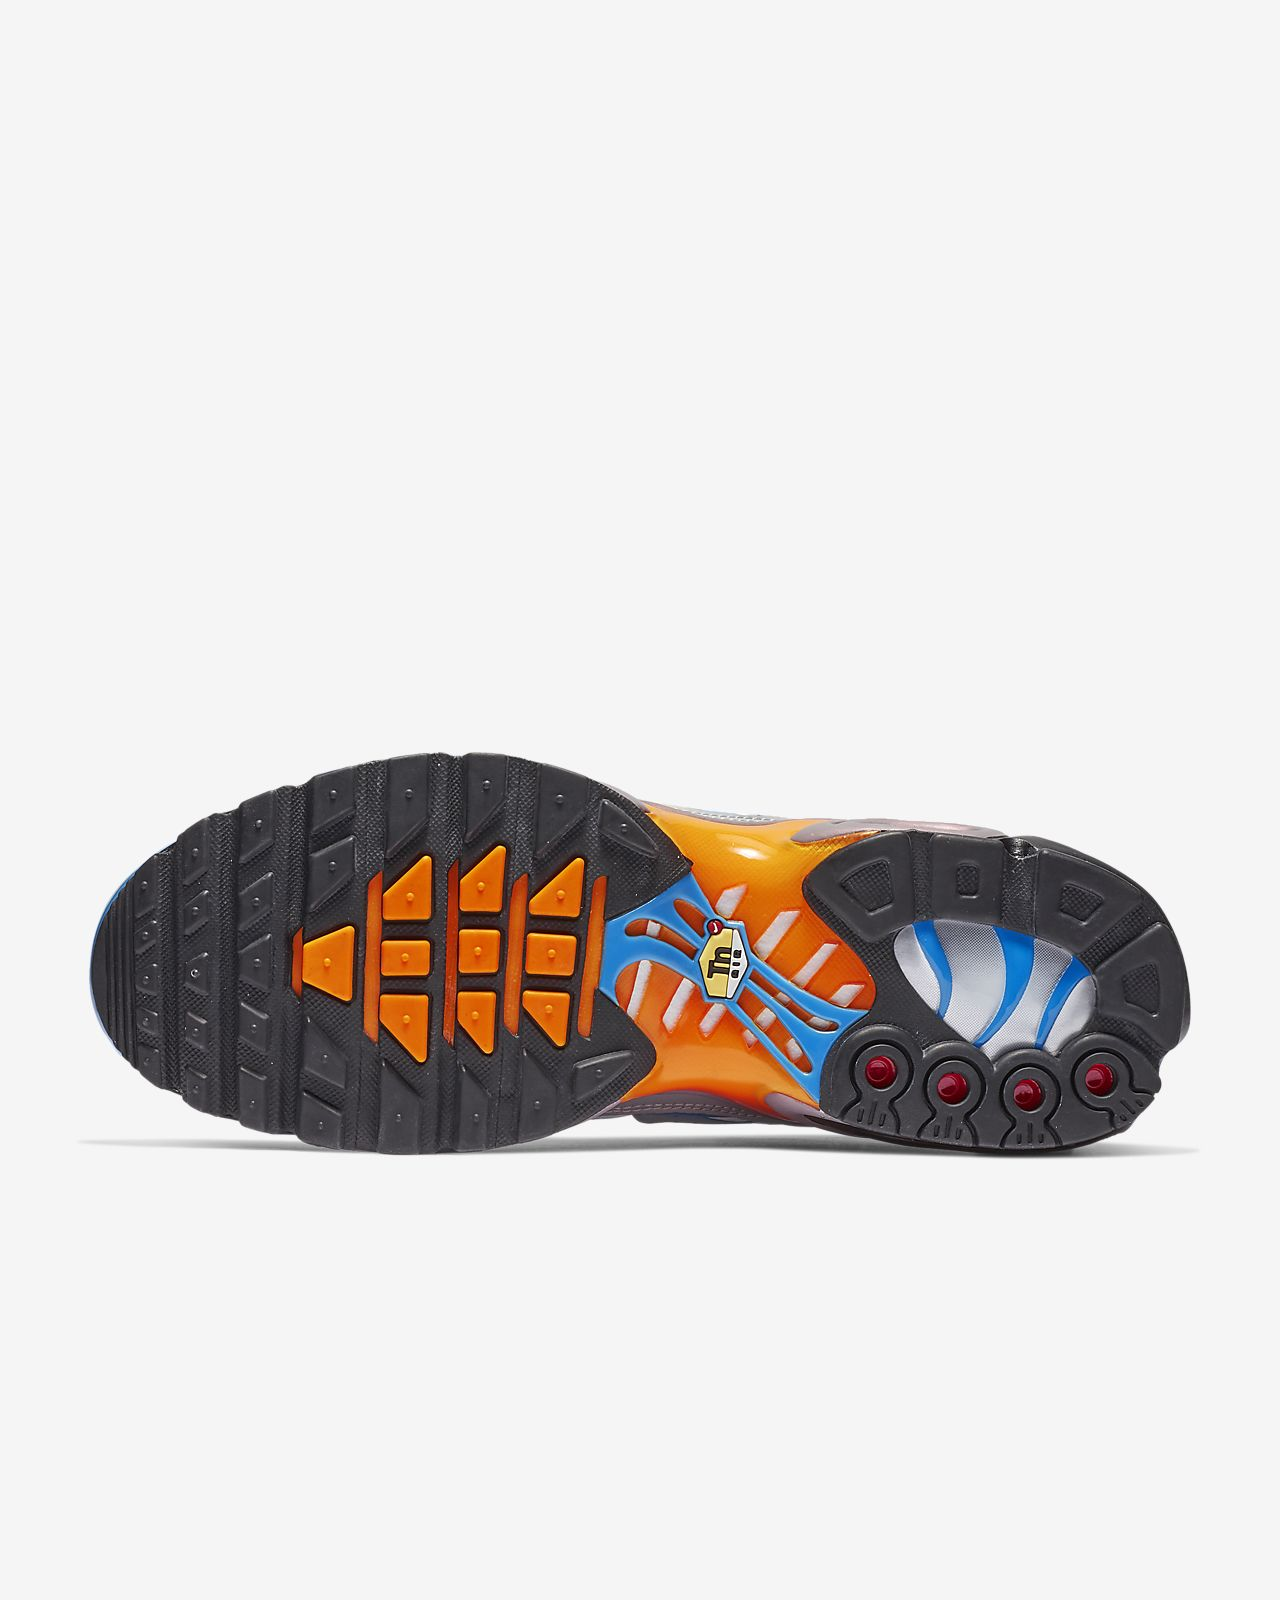 5705497c6da Nike Air Max Plus Premium Men s Shoe. Nike.com